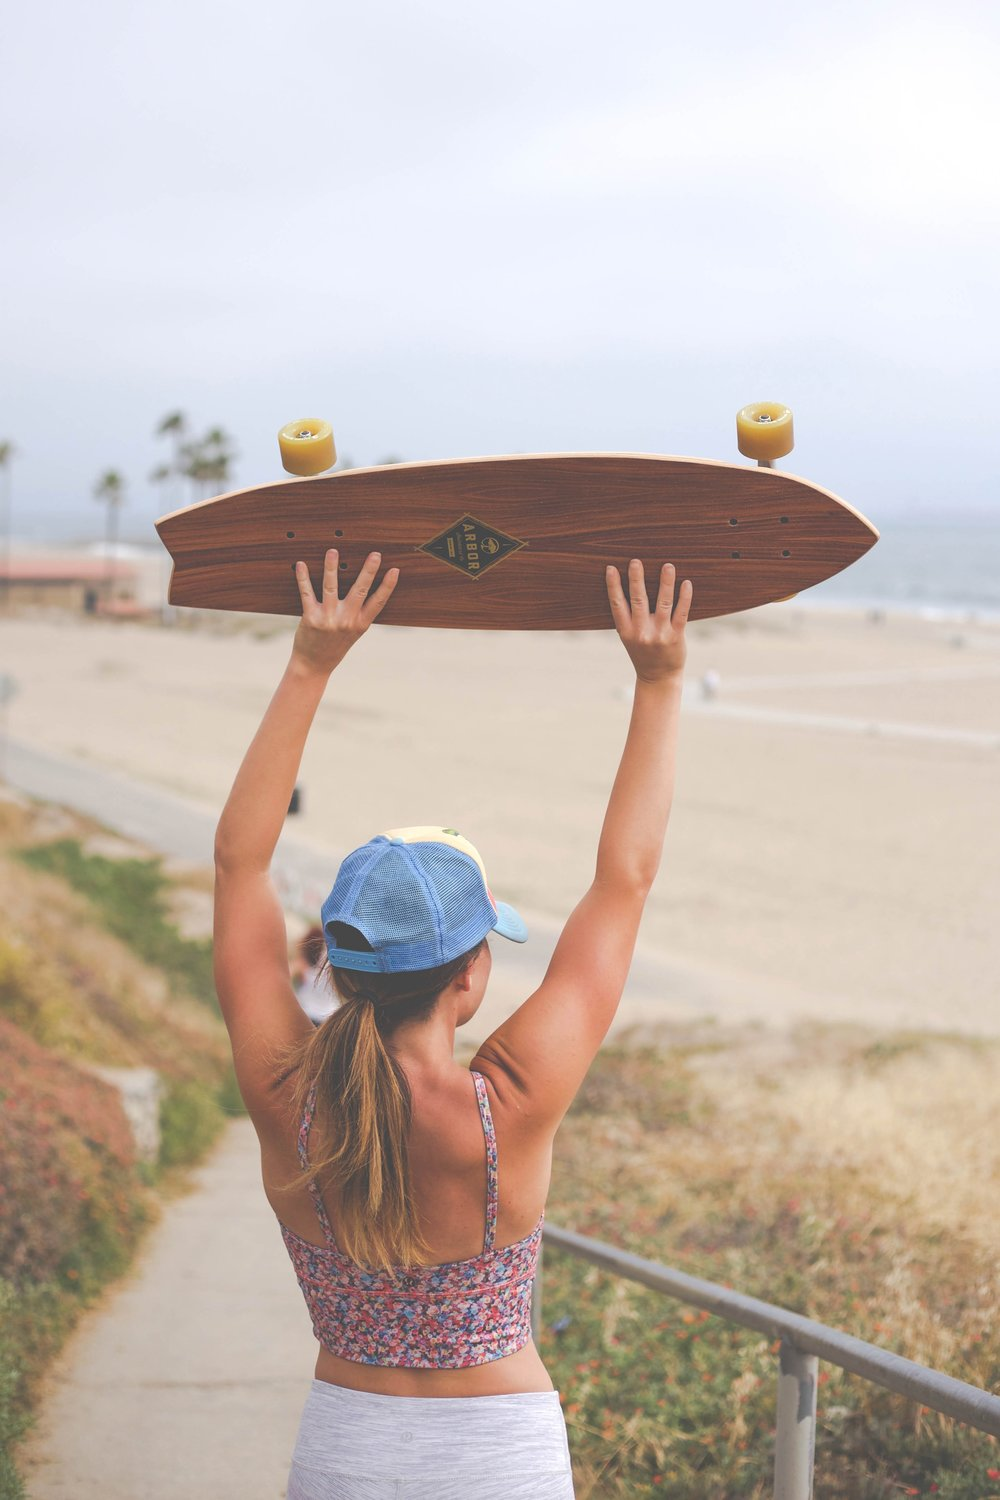 beach-trucker-hat-skateboard-girl.jpg